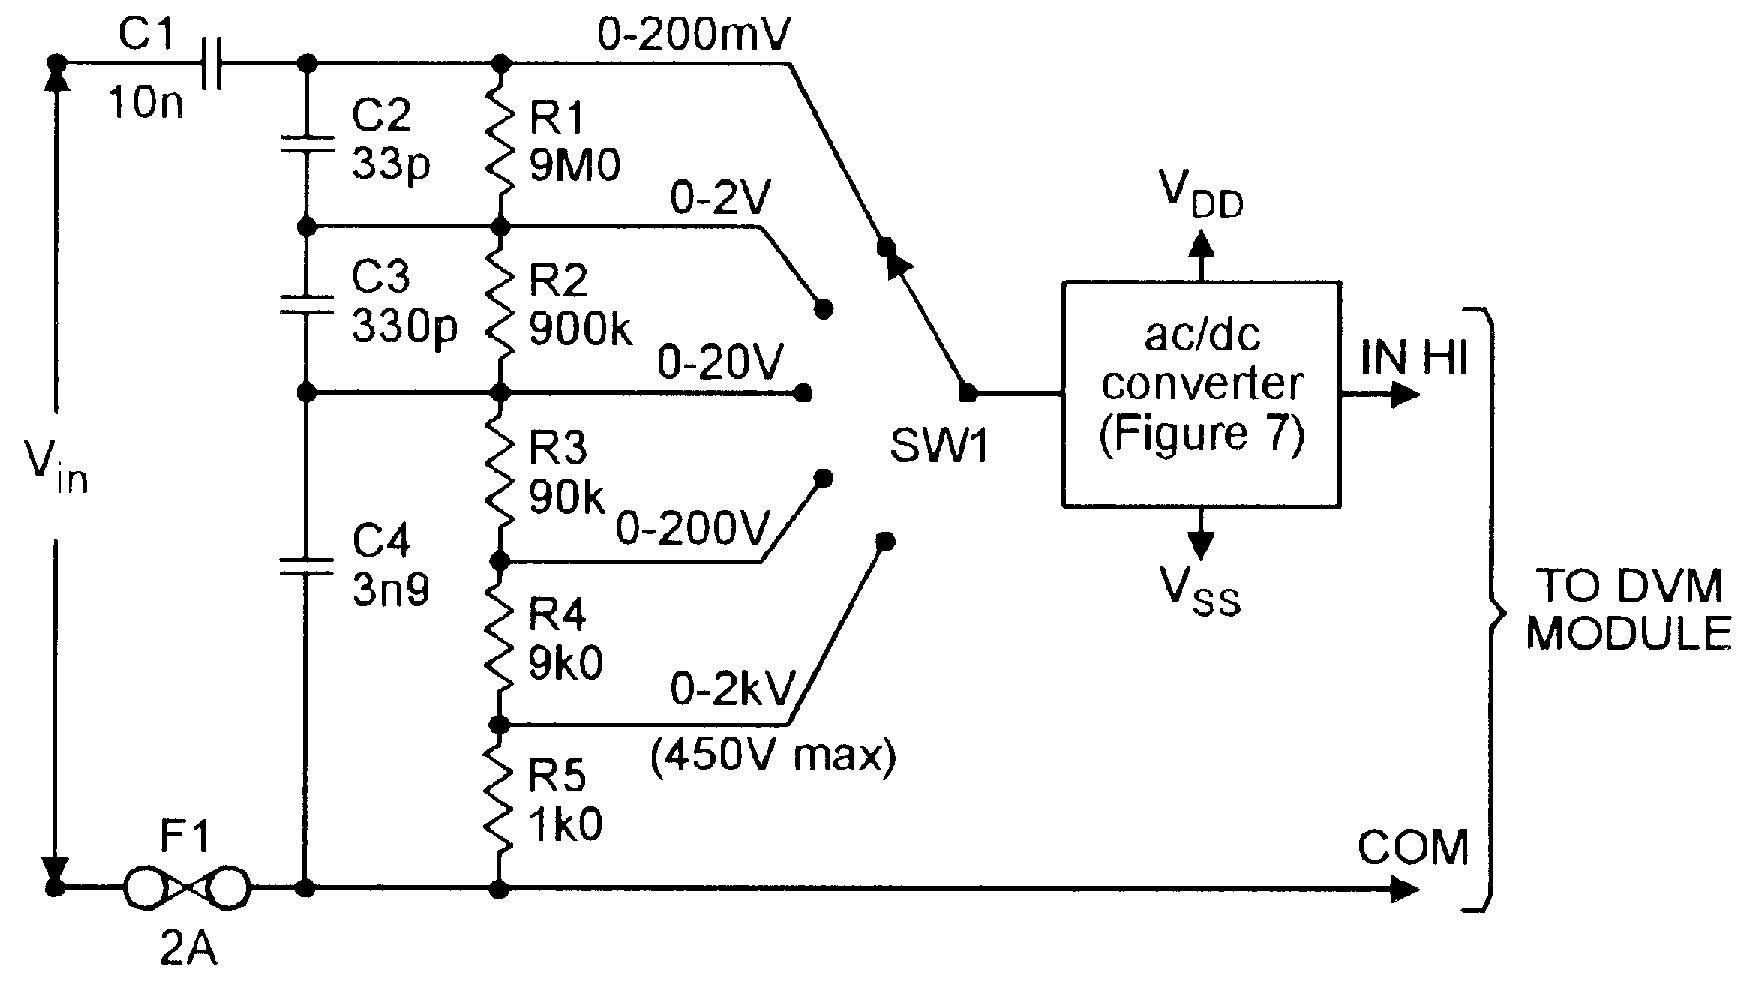 Op Amp Cookbook Part 4 Nuts Volts Magazine Full Wave Rectifier Connection Diagram Figure 8 Five Range Ac Voltmeter Converter For Use With Dvm Modules